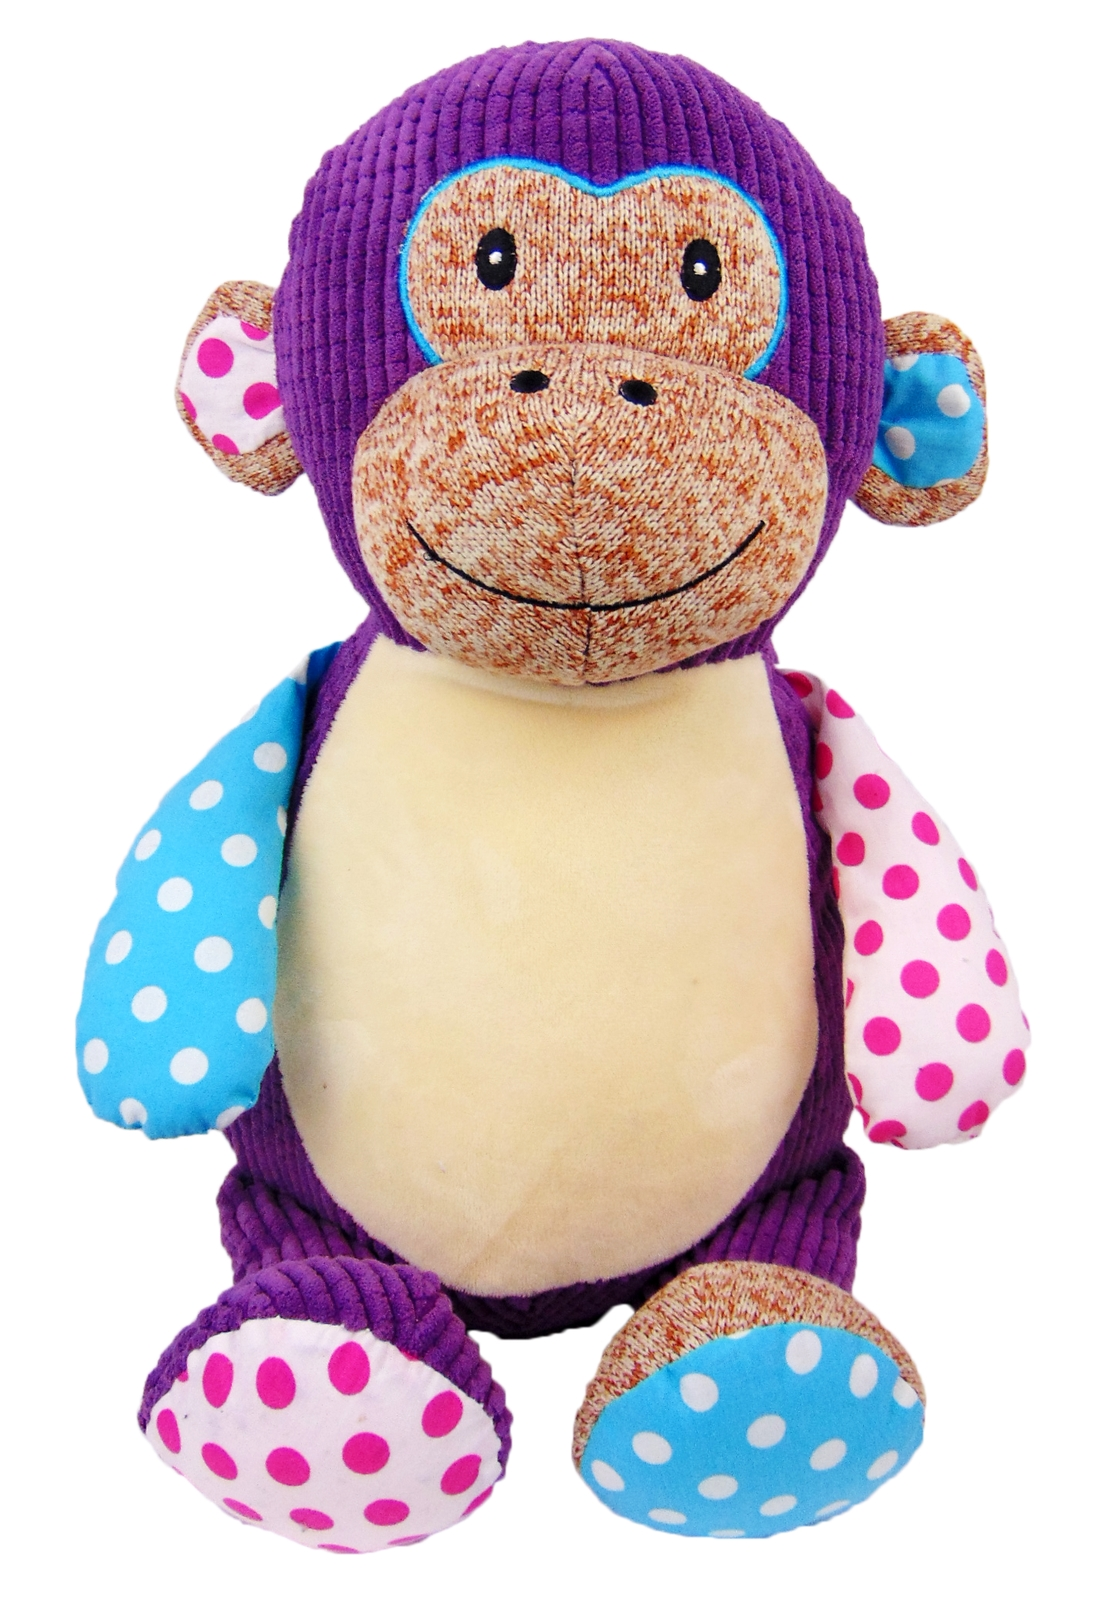 This+is+an+image+of+a+personalised+teddy+monkey+purple+patchwork+from+My+Teddy